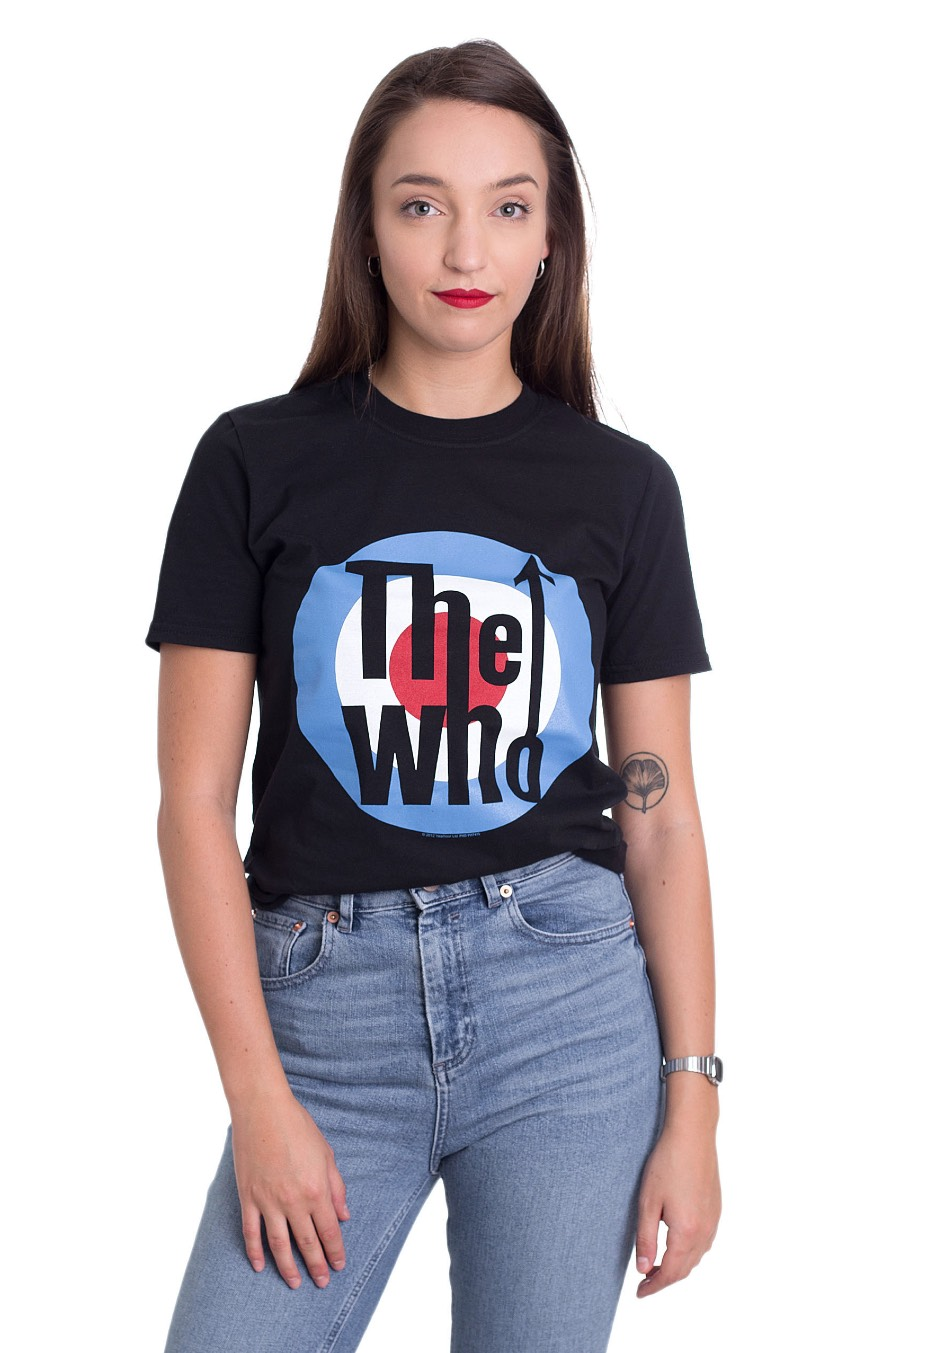 the who t shirt